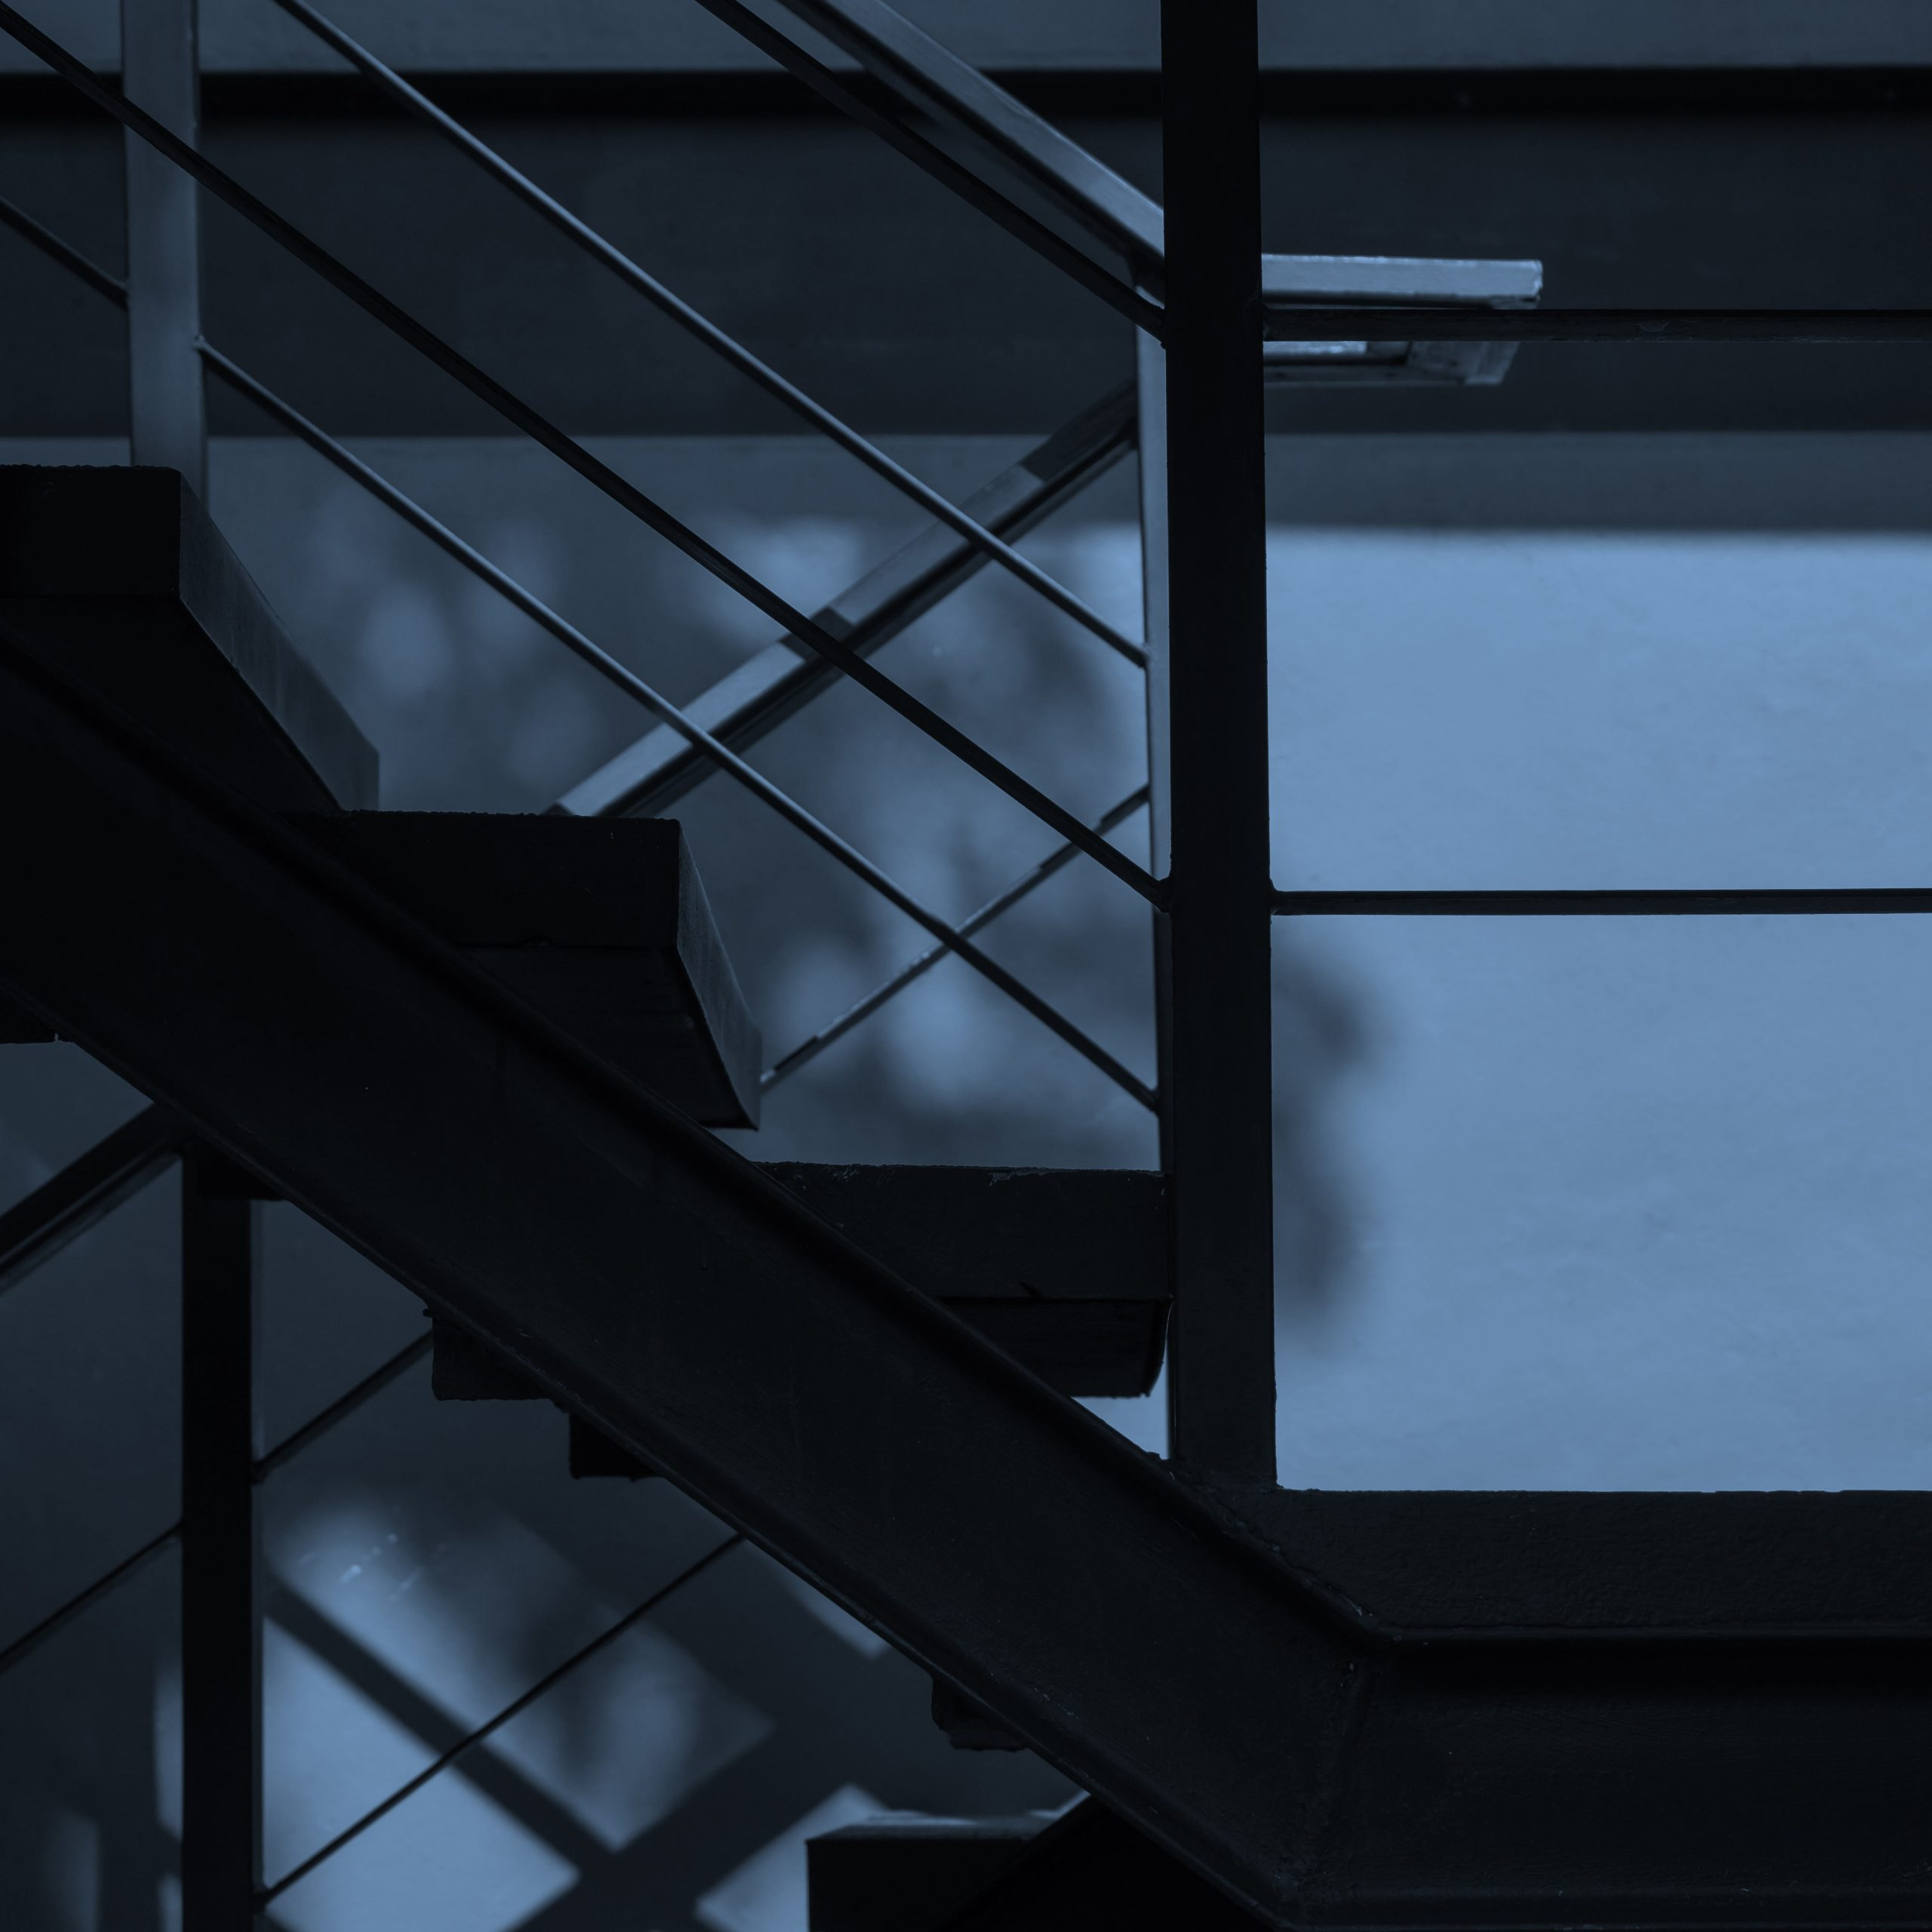 Staircase-swuare